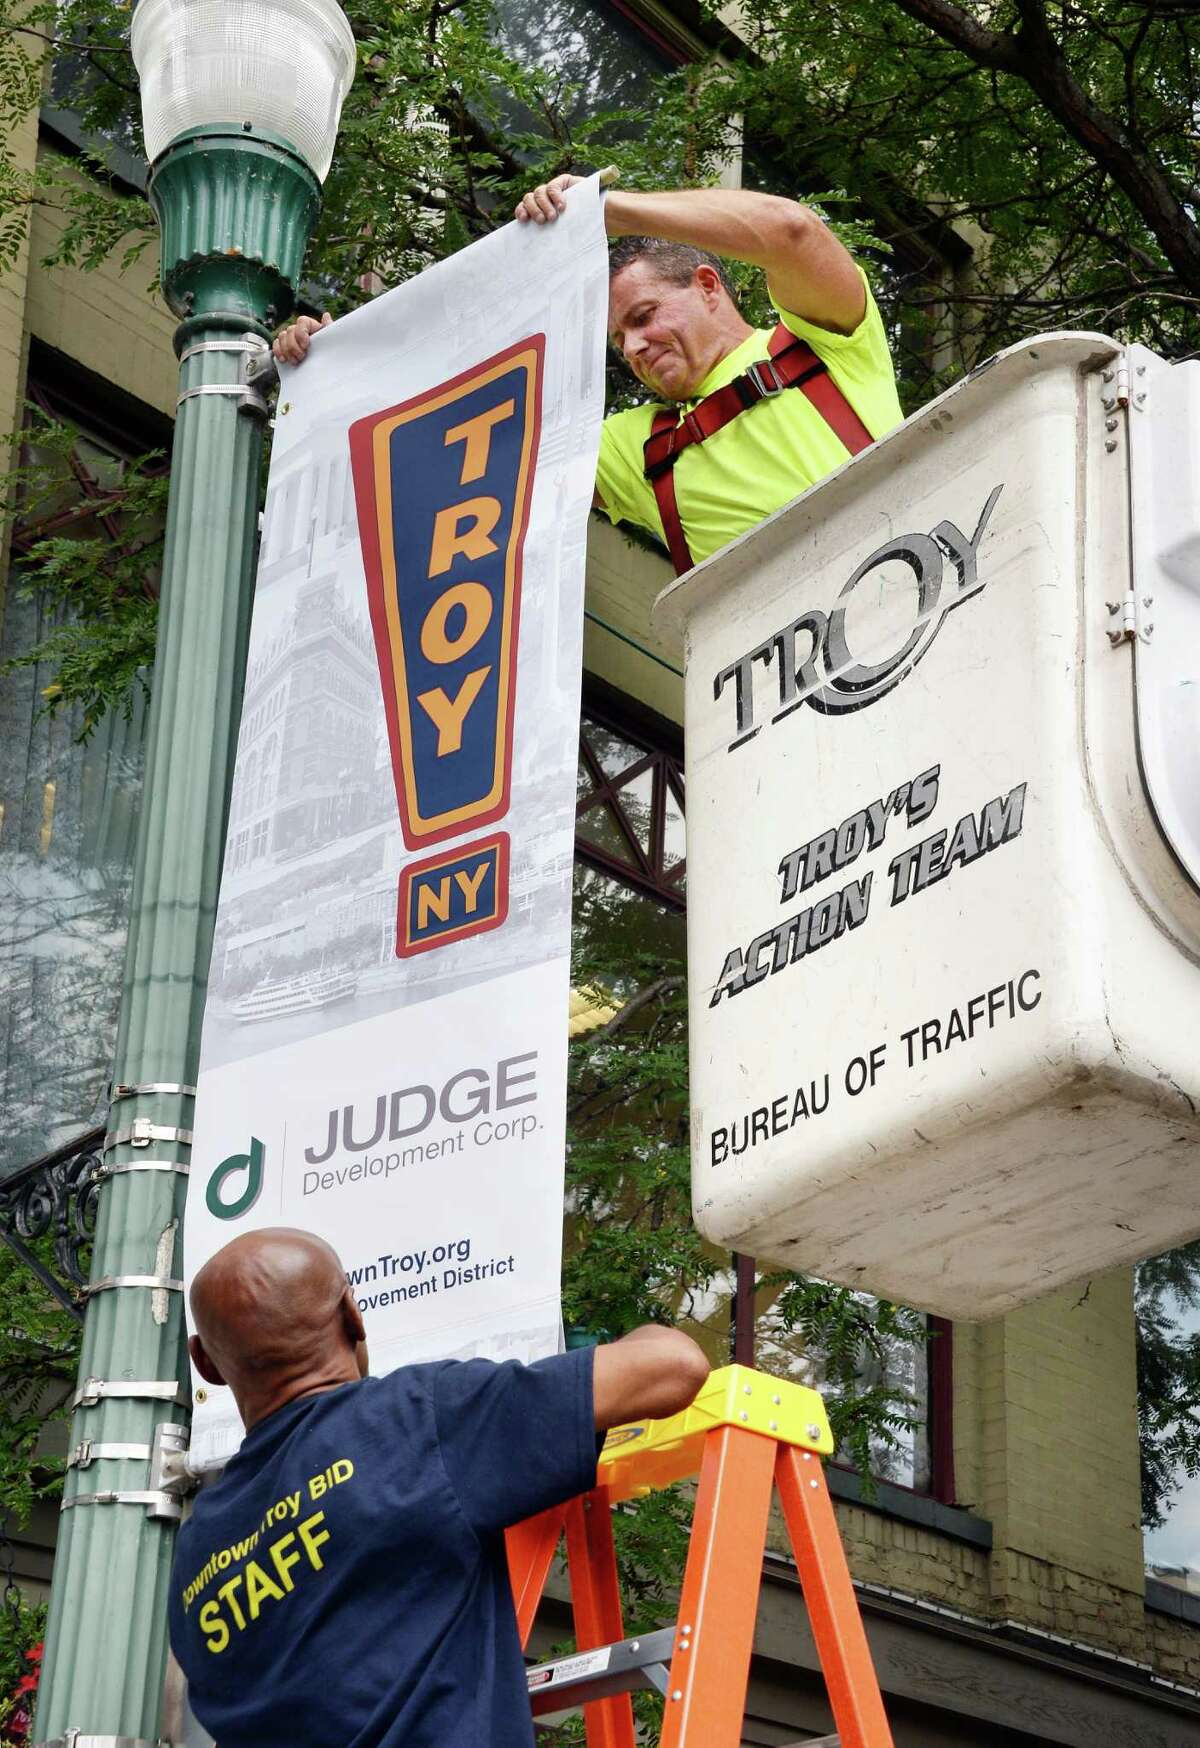 Traffic department's Bill Wangler, top, and Troy BID's Daryl Evans hang the first of 100 new style street banners at Monument Square Friday Sept. 4, 2015 in Troy, NY. (John Carl D'Annibale / Times Union)